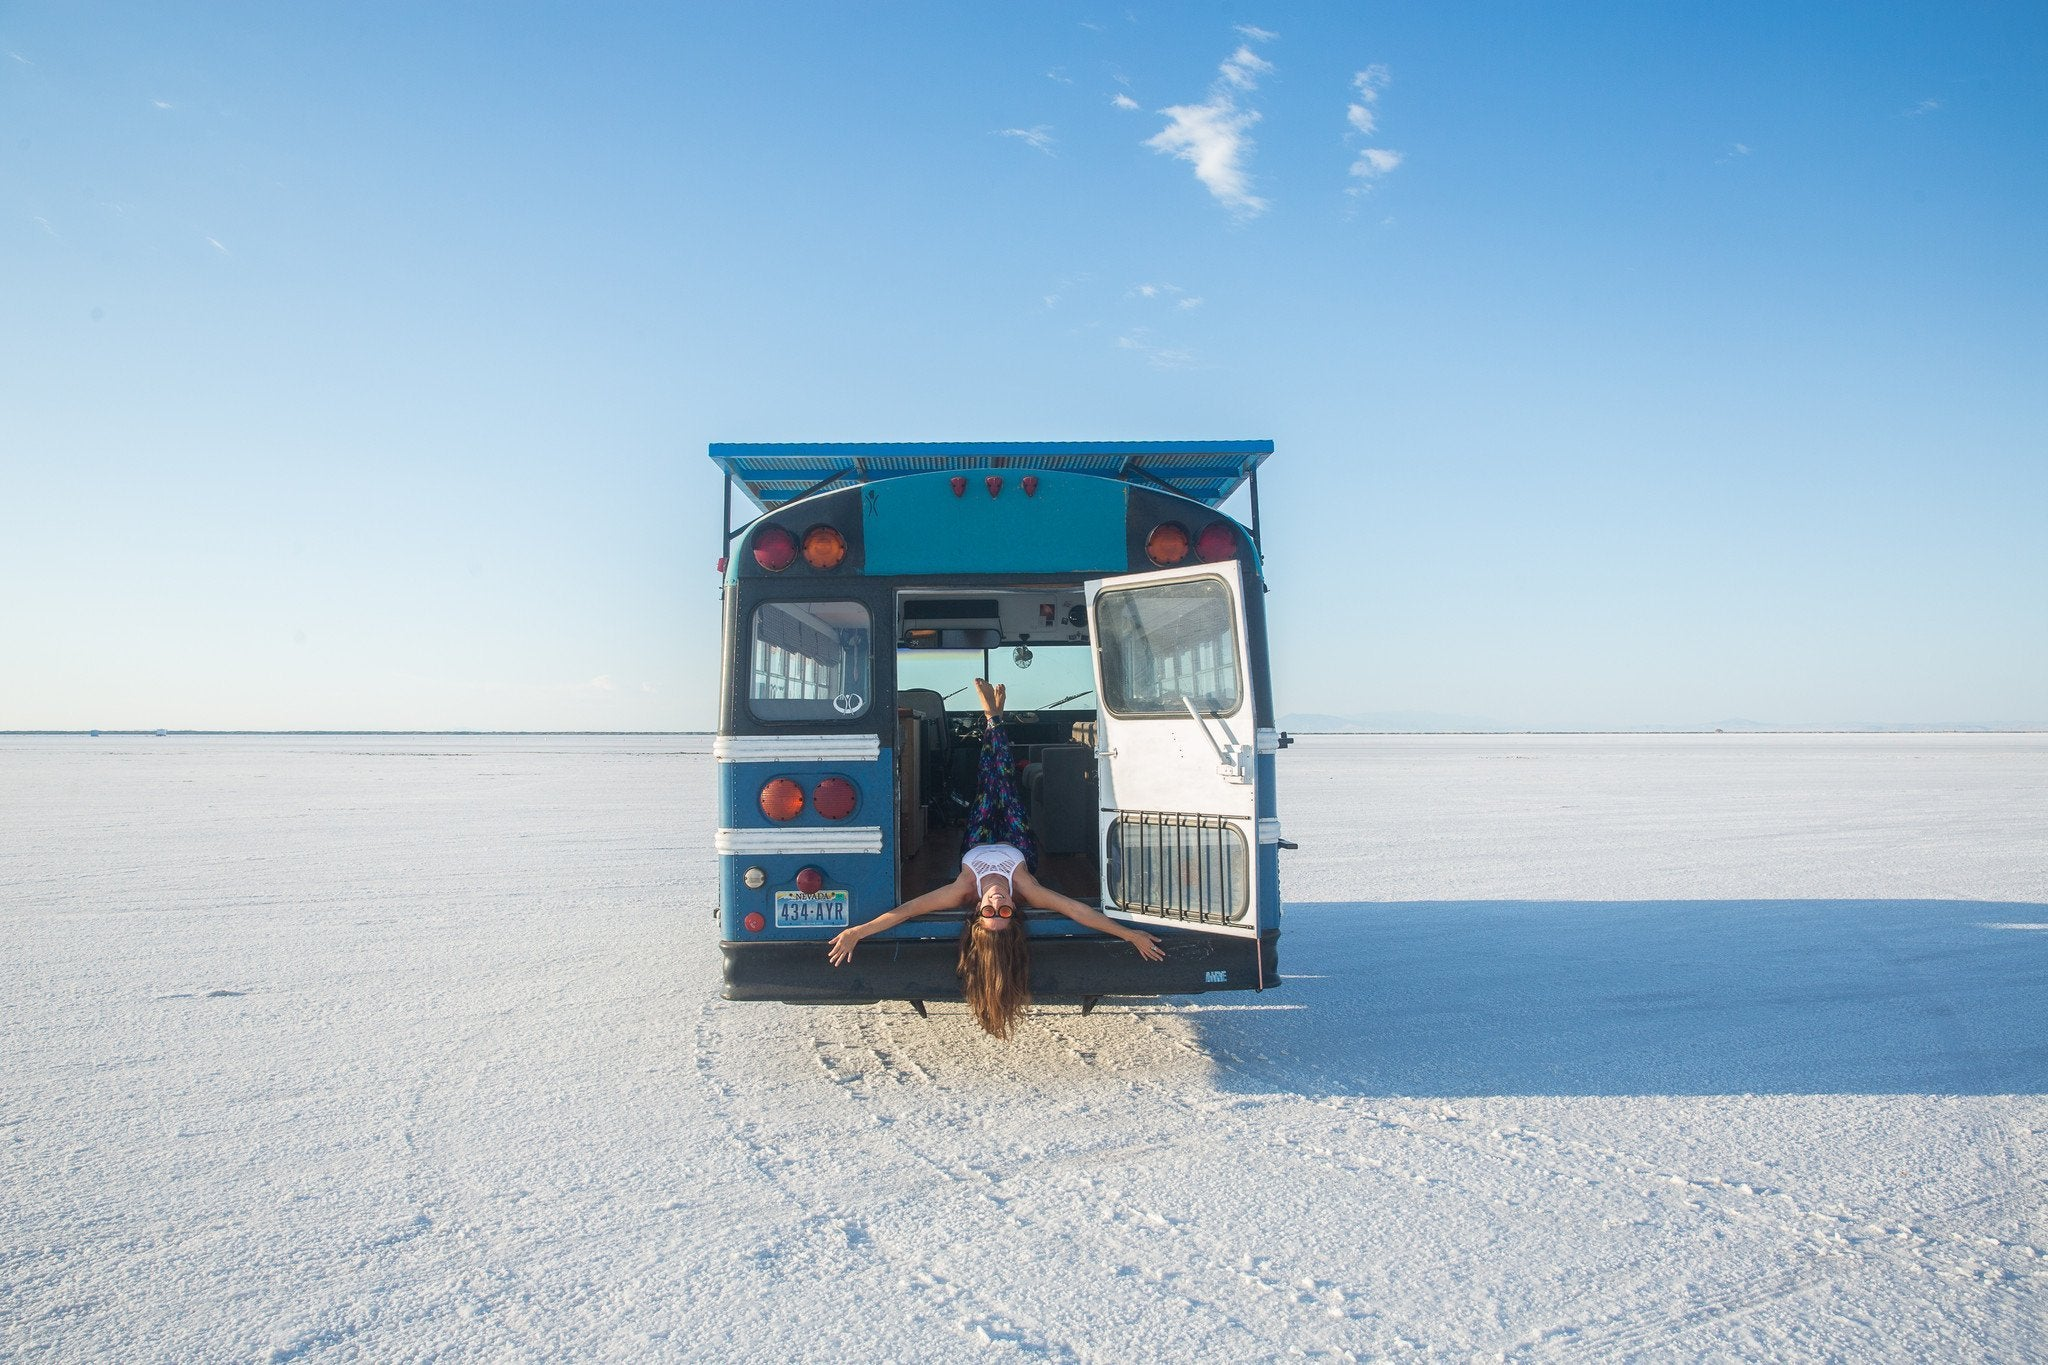 Blue Bus Adventure - From Consultant to Tiny Bus Adventurer